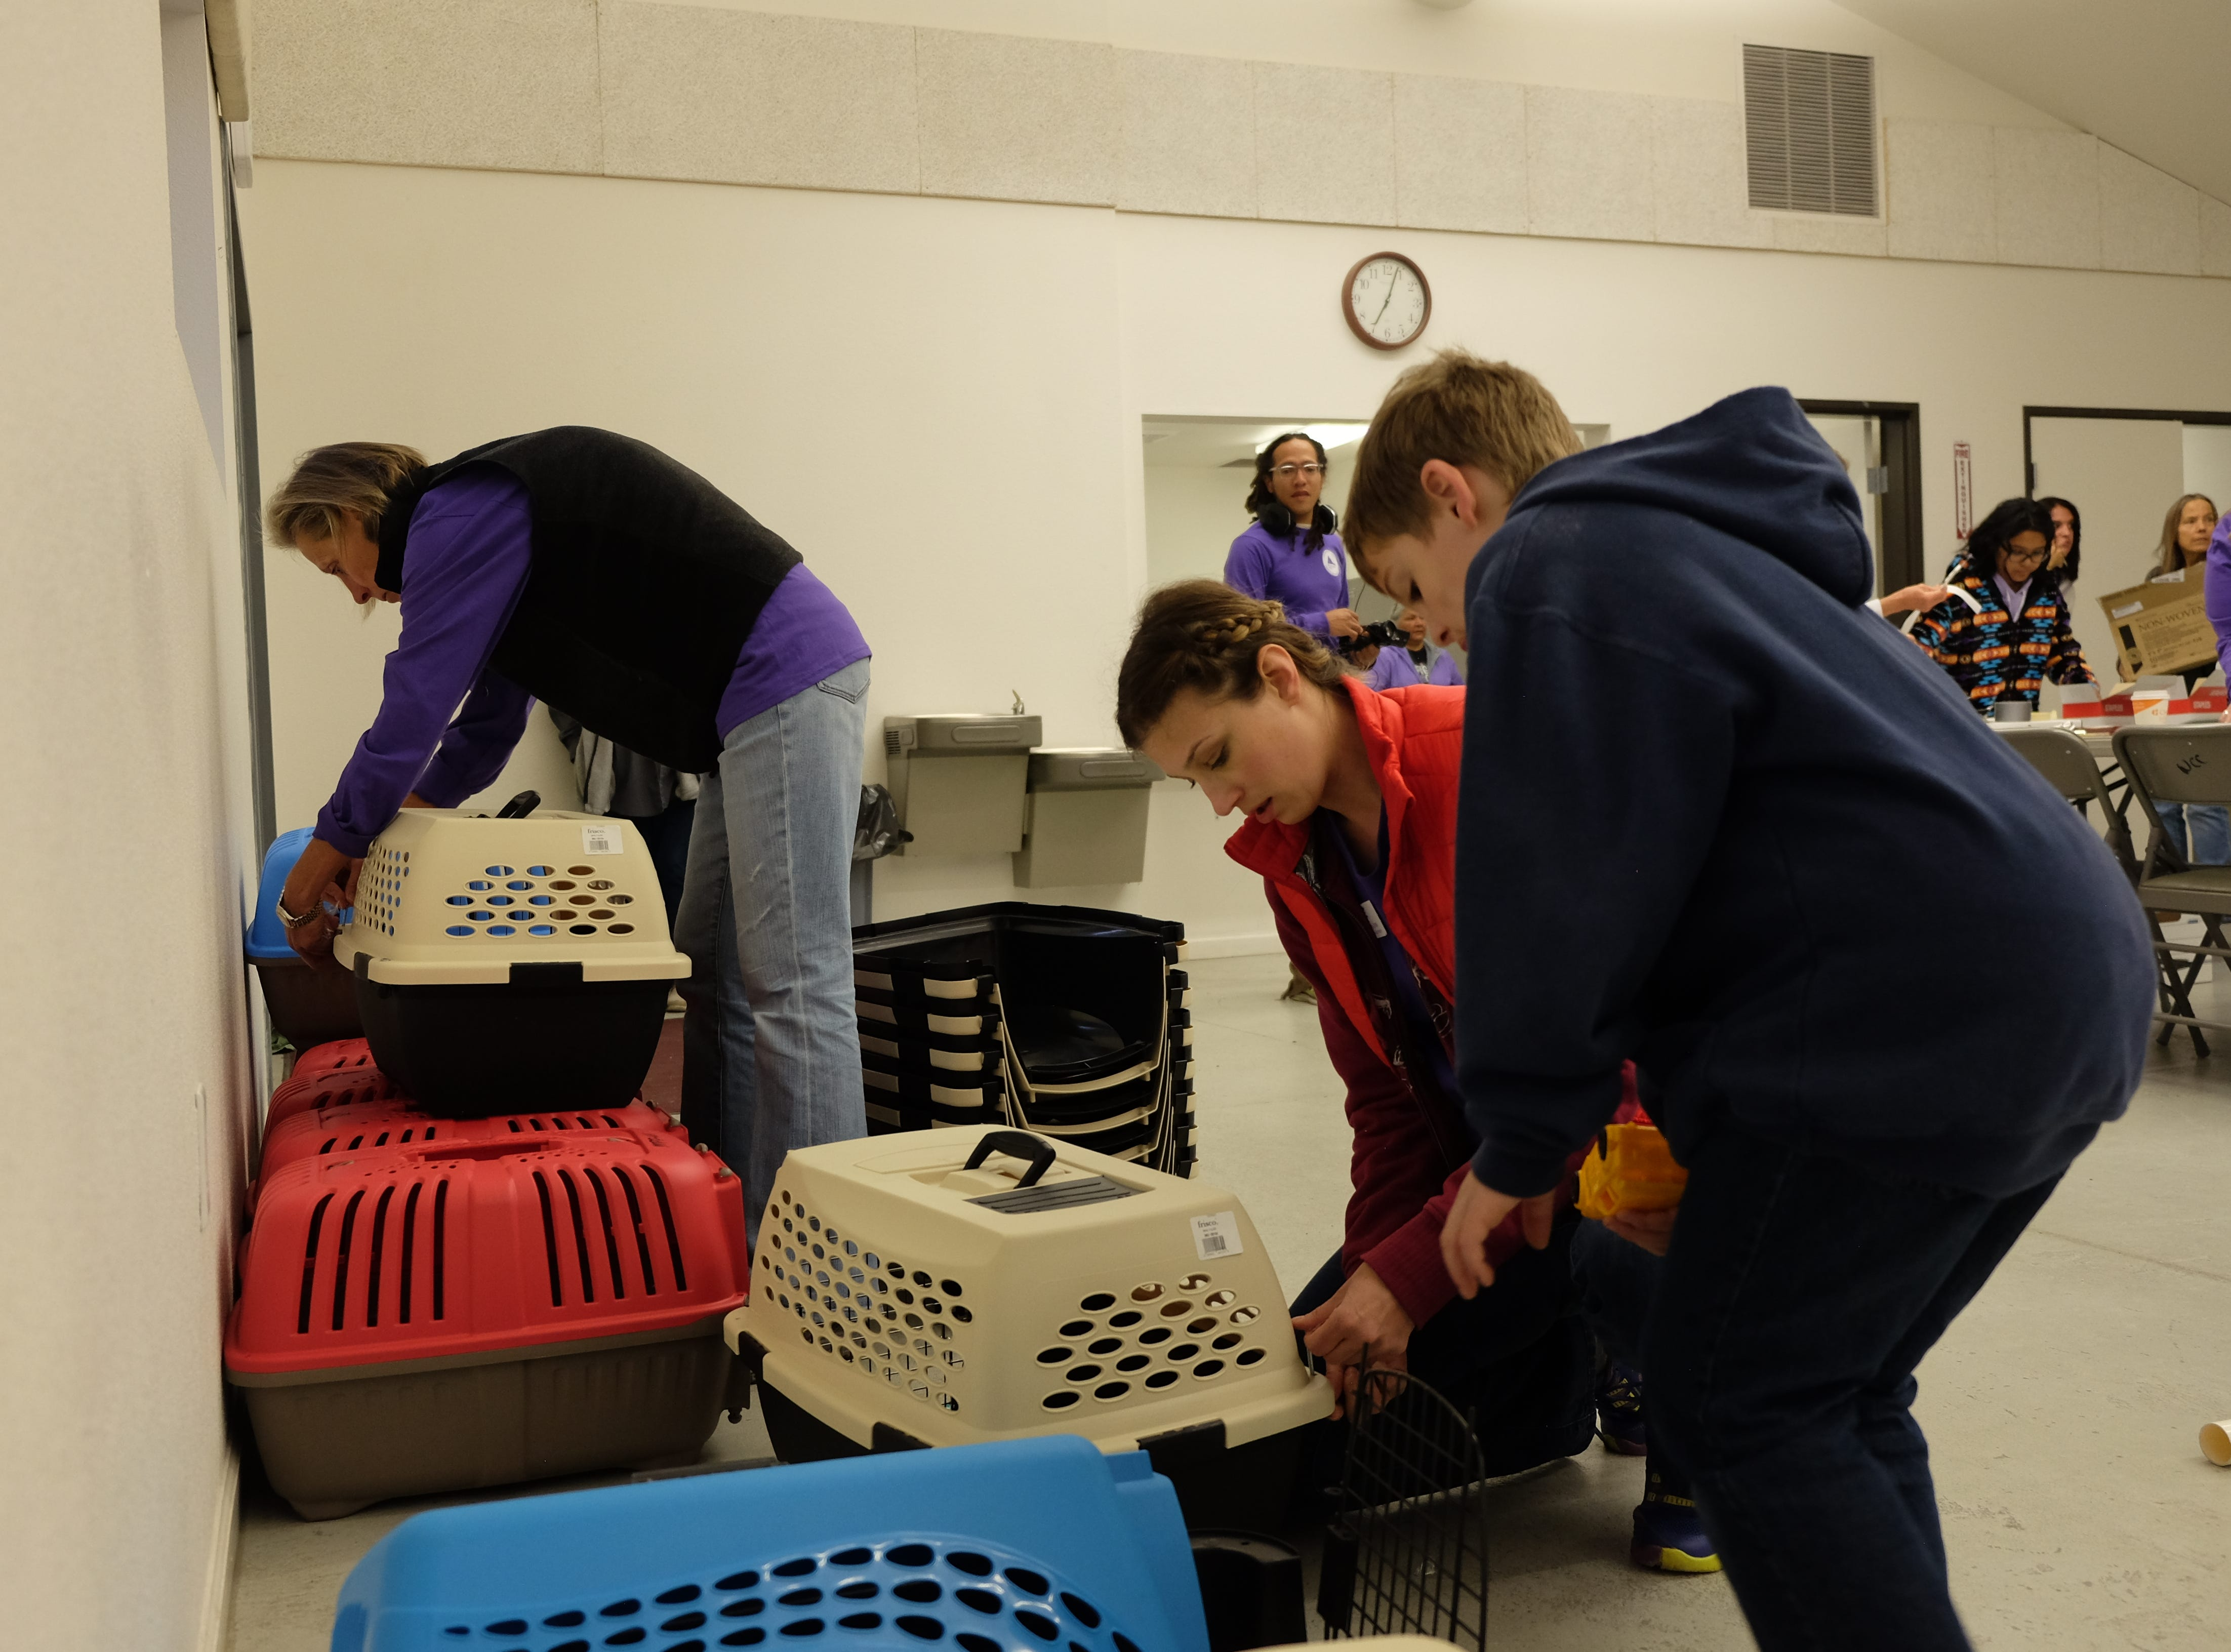 Here's a scene from the Maddie's Pet Project in Nevada Clinic held Oct. 13-14, 2018 in Wadsworth, where 142 cats and dogs were spayed or neutered. Done in collaboration with Nevada Humane Society and the Pyramid Lake Paiute Tribe, the temporary clinic in the Wadsworth Community Center was free for tribal members in Wadsworth, Nixon and Sutcliffe.